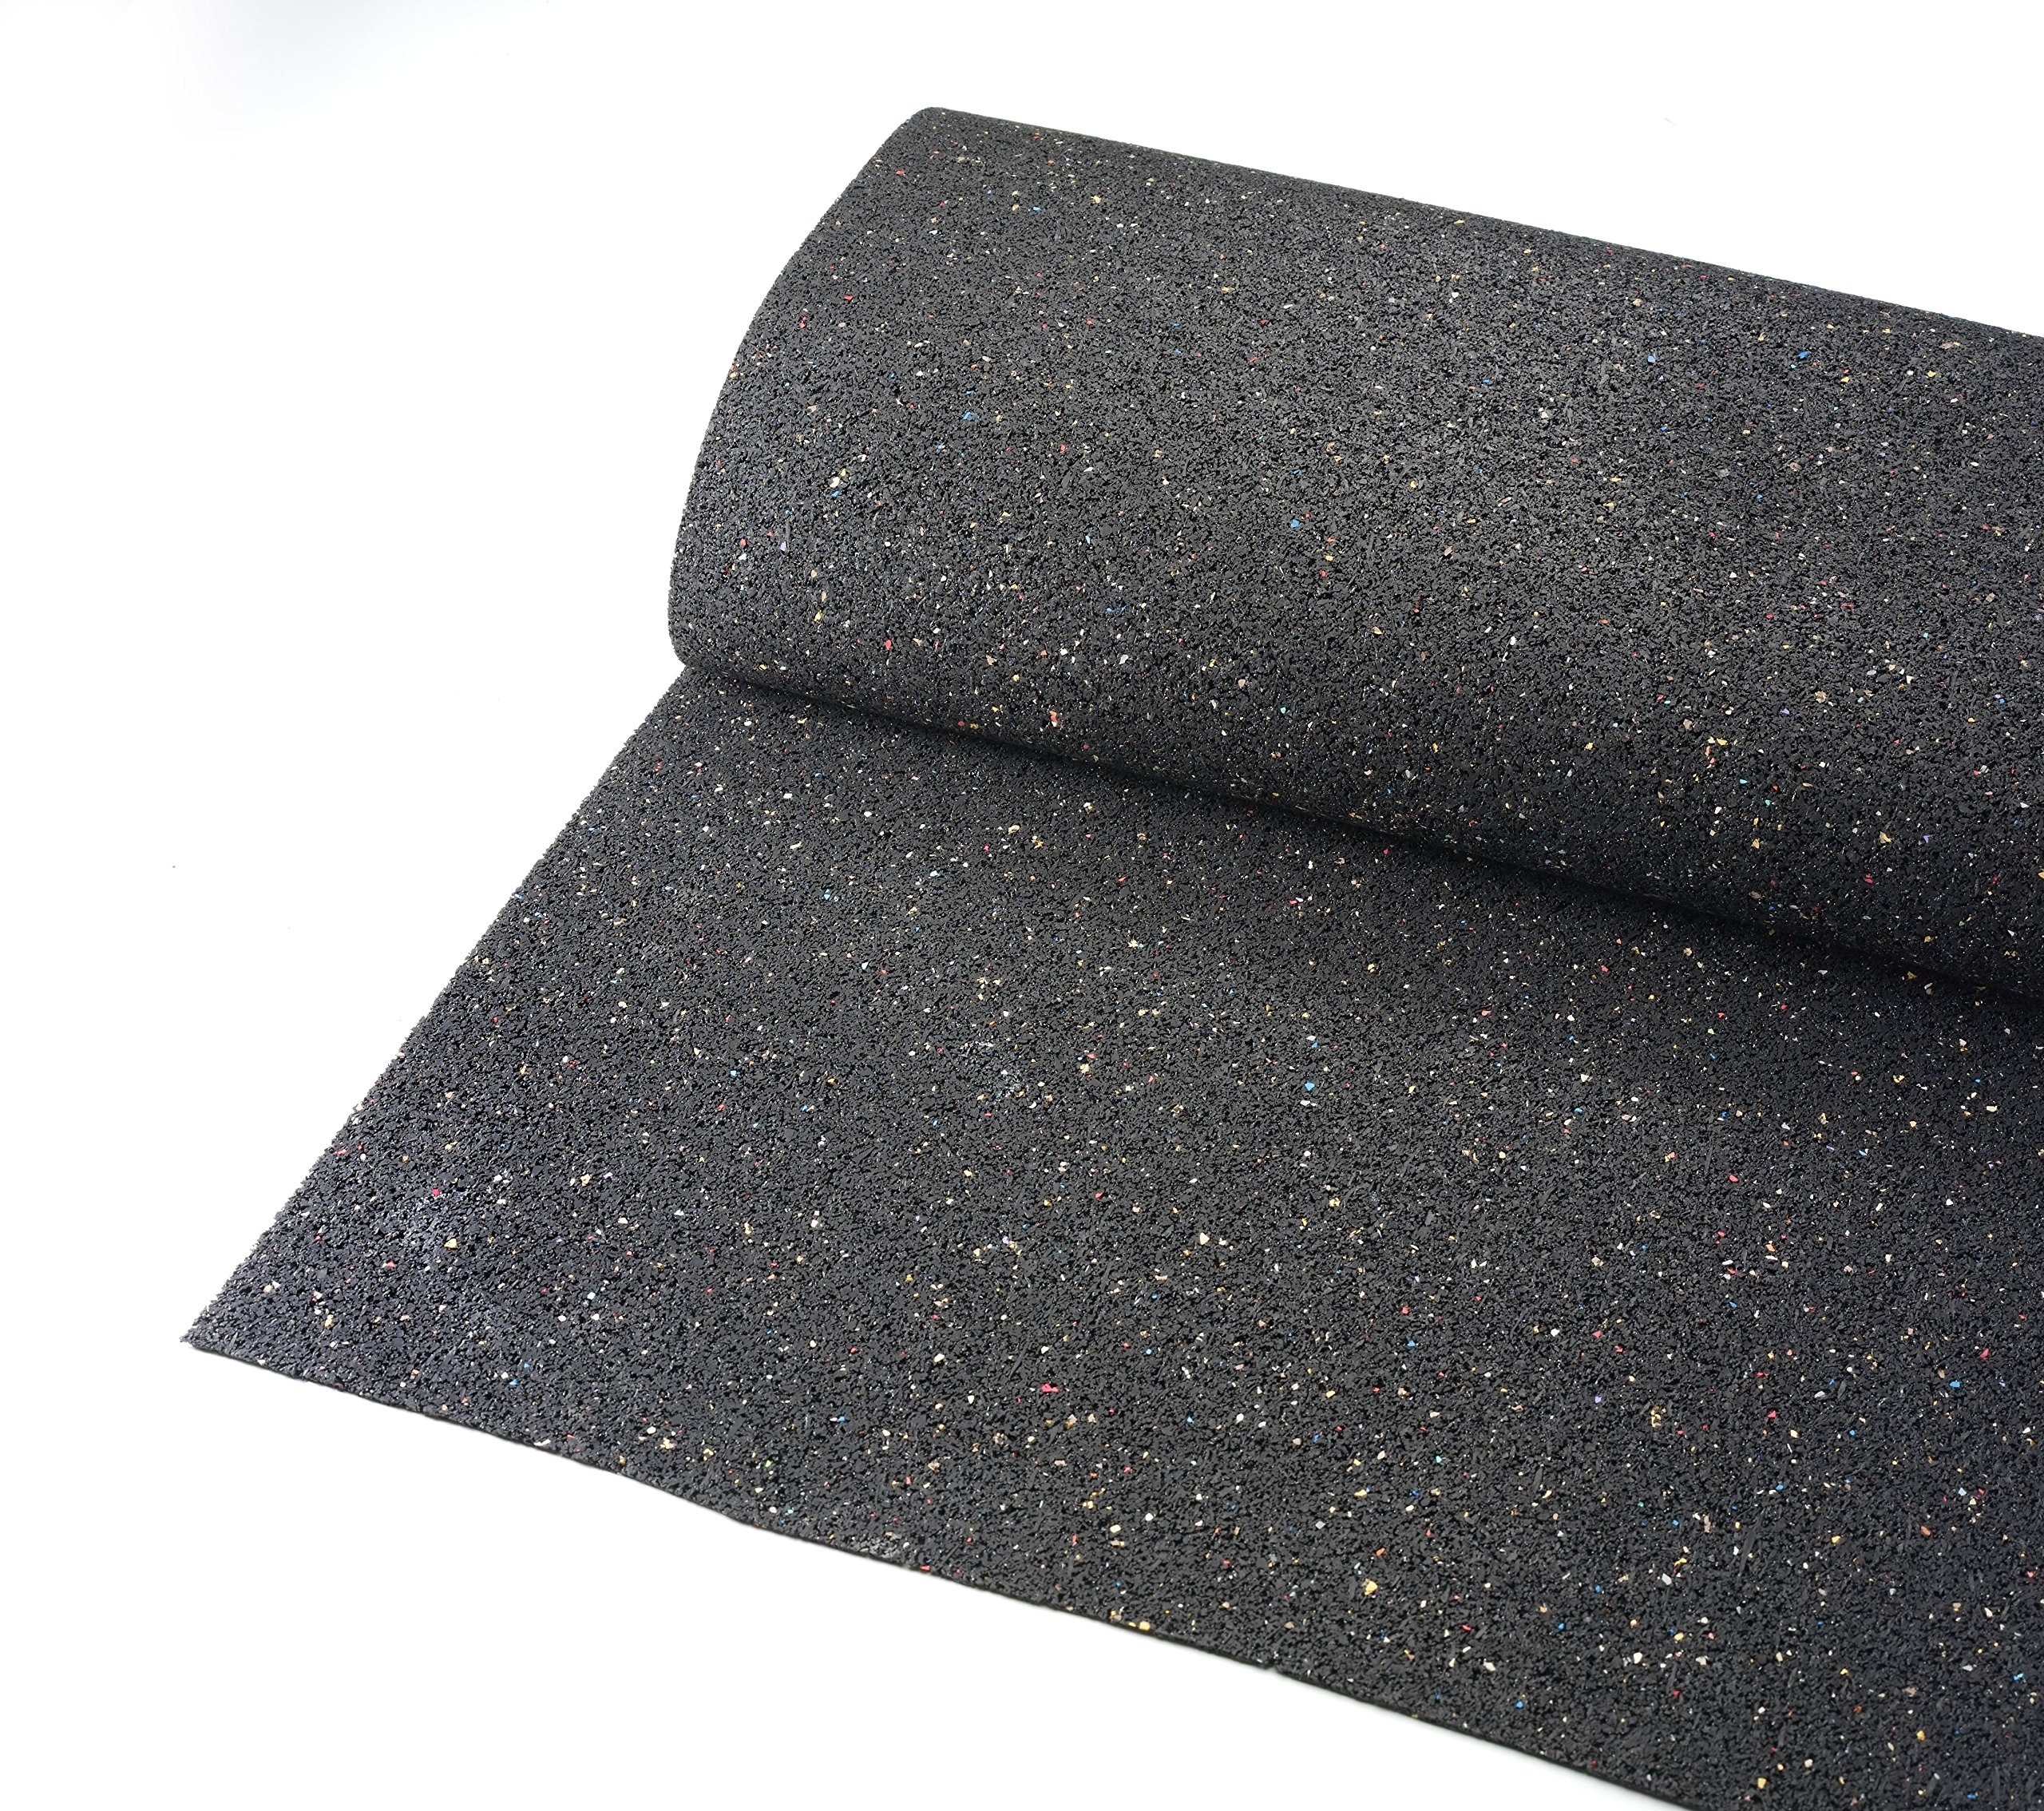 Swisstrax (ADBLRRU) Recycled Rubber Underlay for Double Car Pad